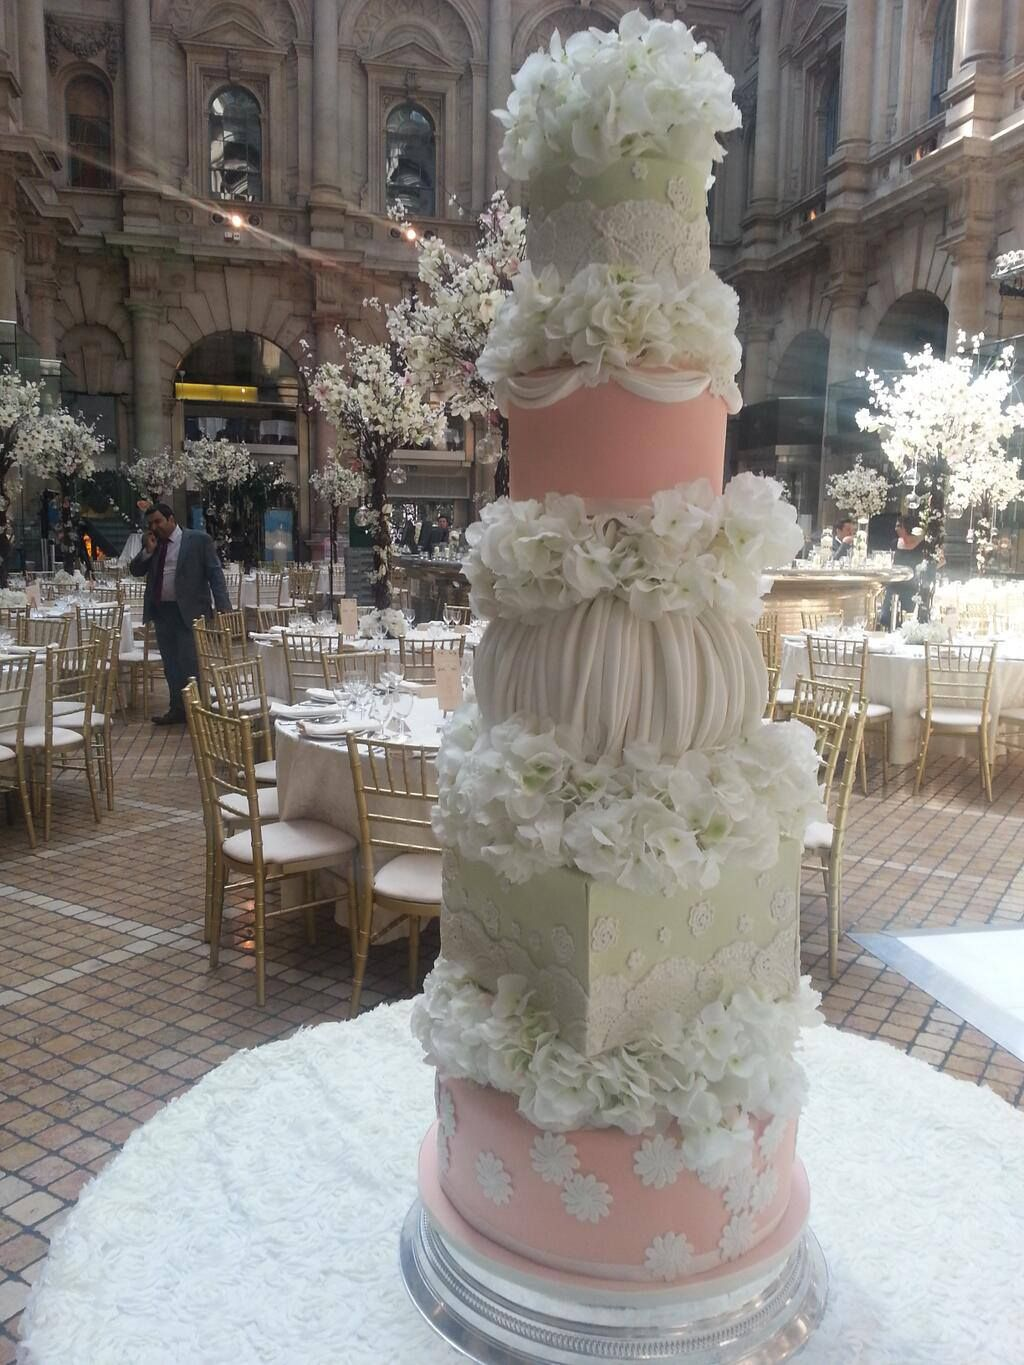 One of our recent wedding cakes a five tier mint green and peach